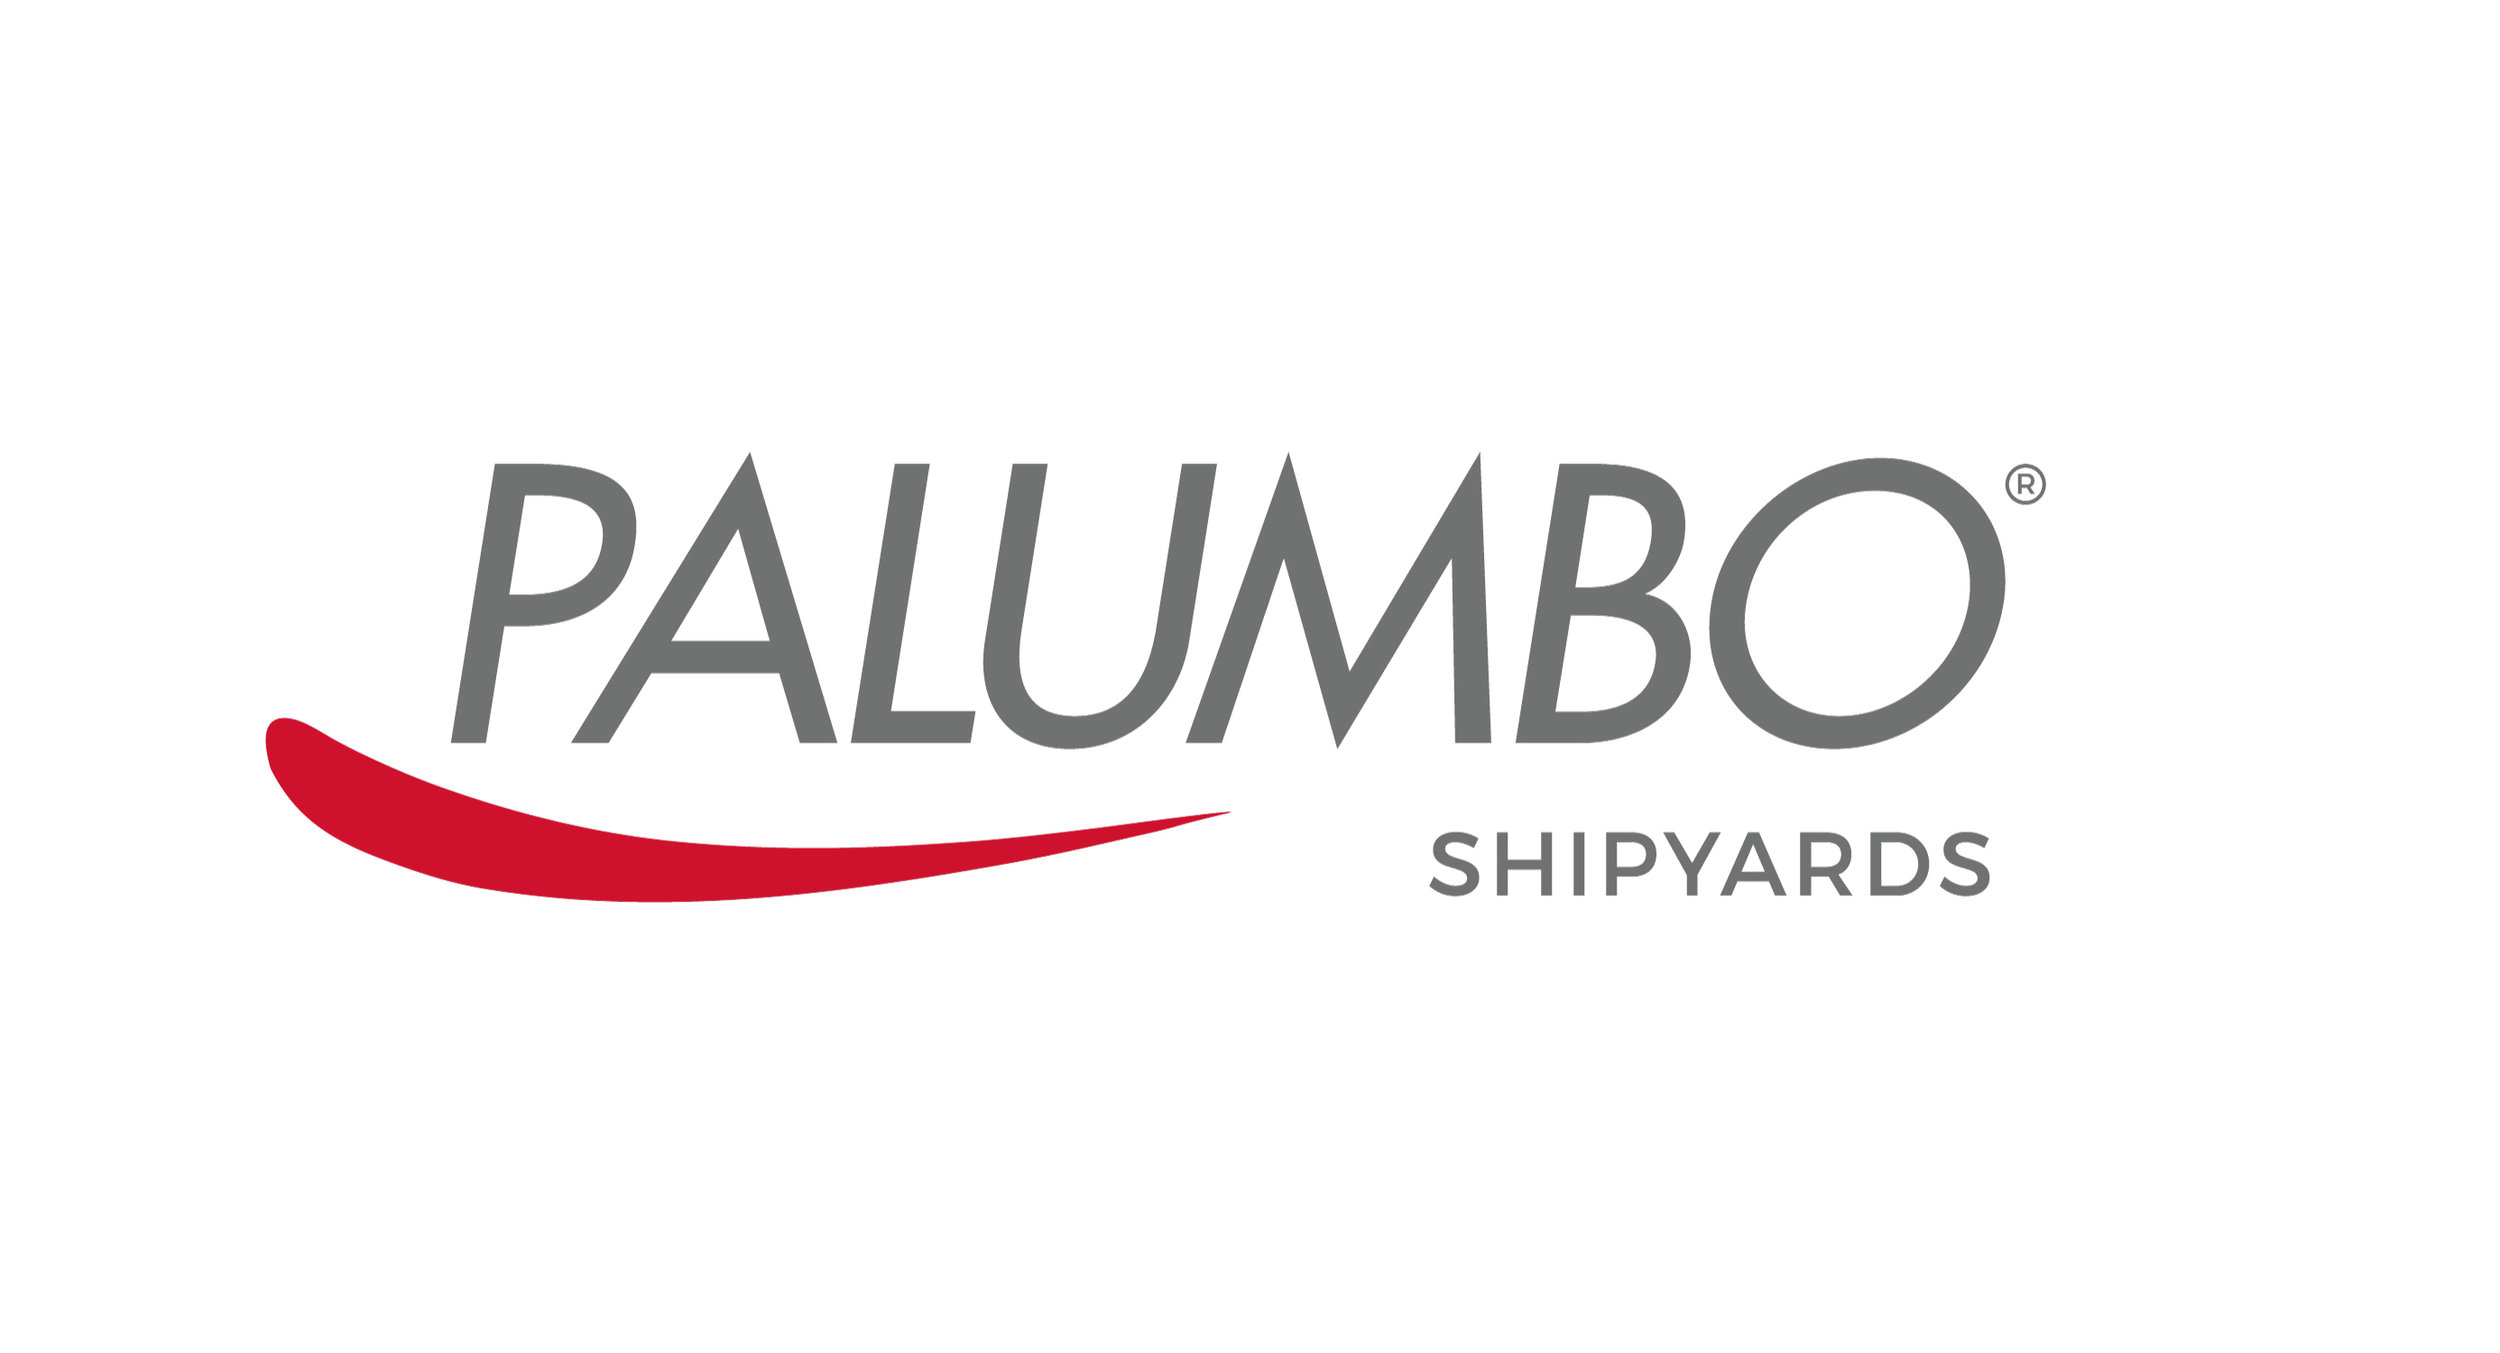 palumbo_2018A_shipyards_color_424+186_U500.jpg